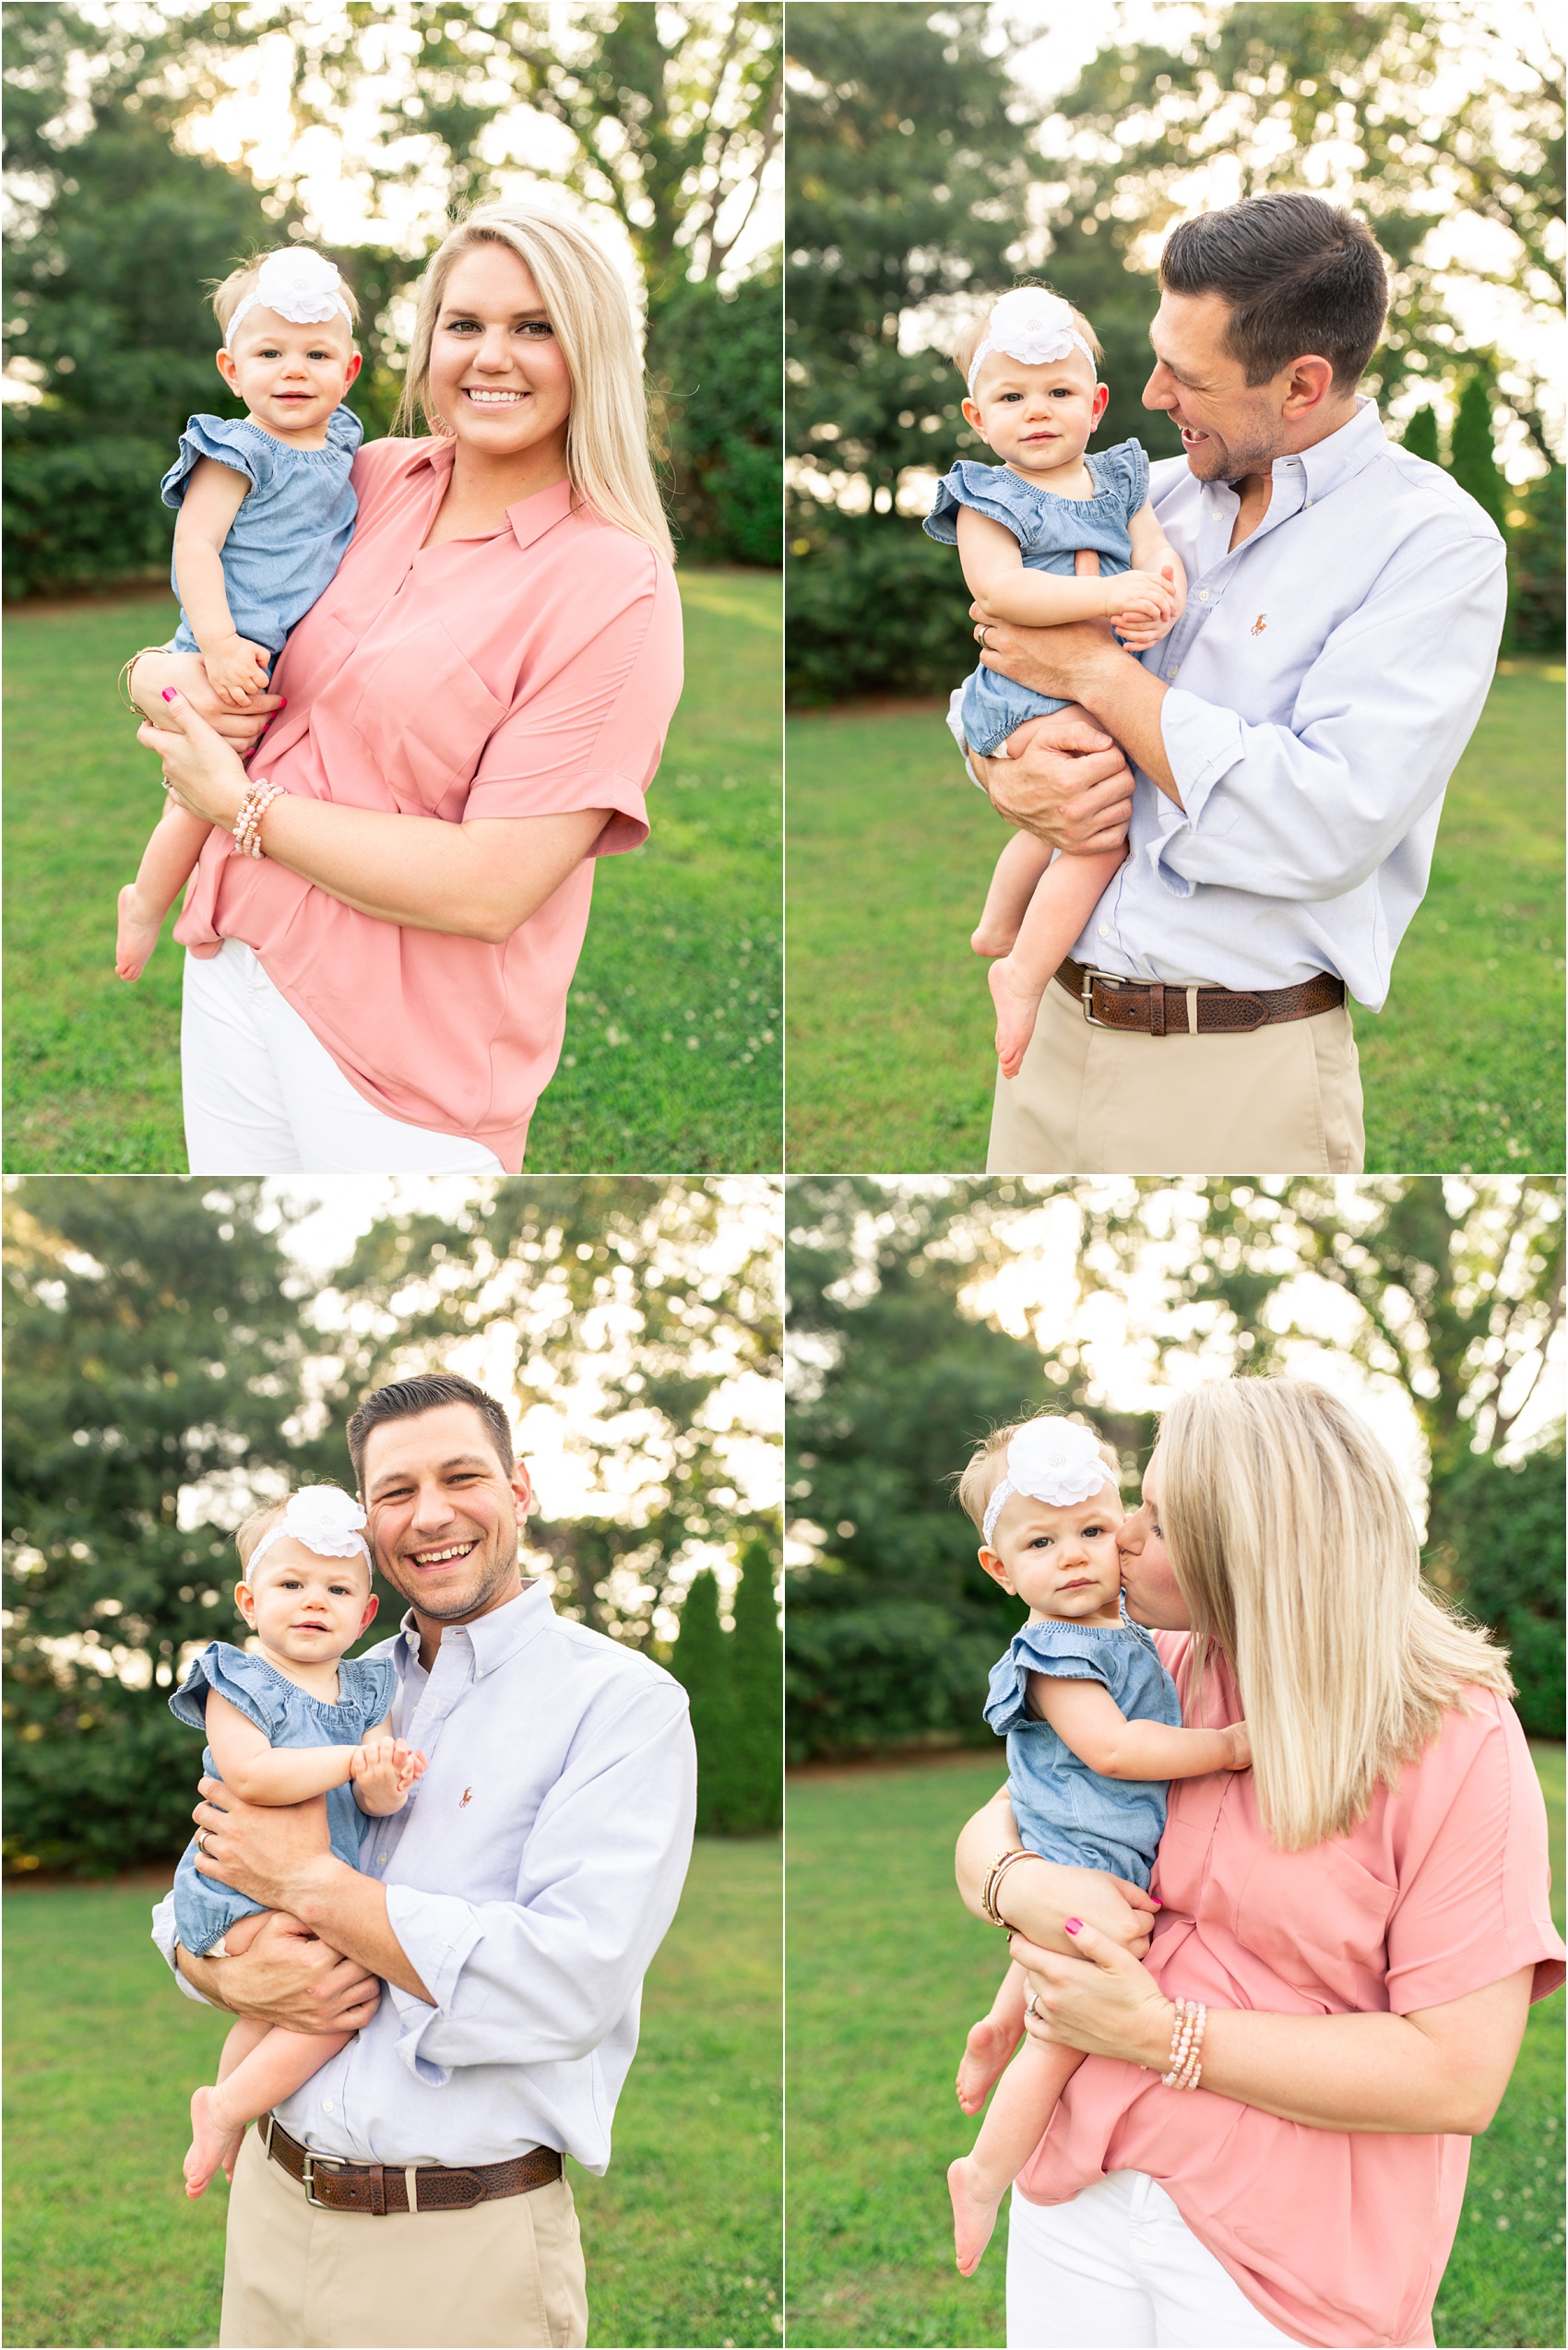 Savannah Eve Photography LLC- Kroko Family-6.jpg